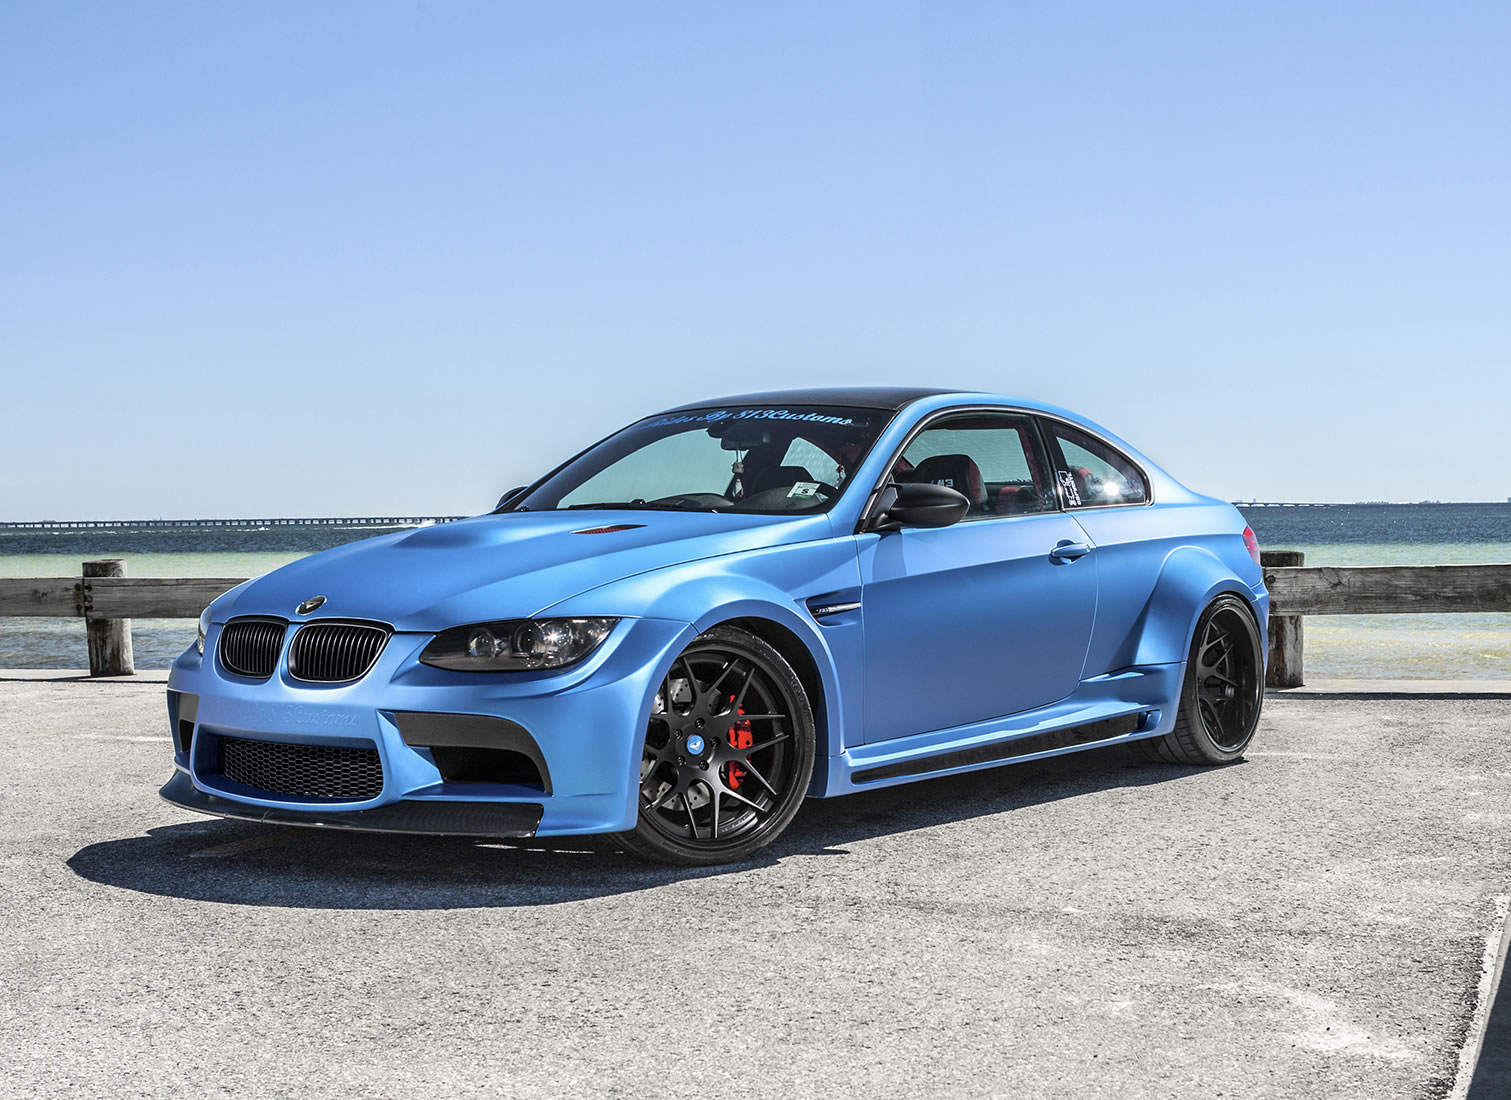 bmw m3 gtrs3 wallpapers-#25